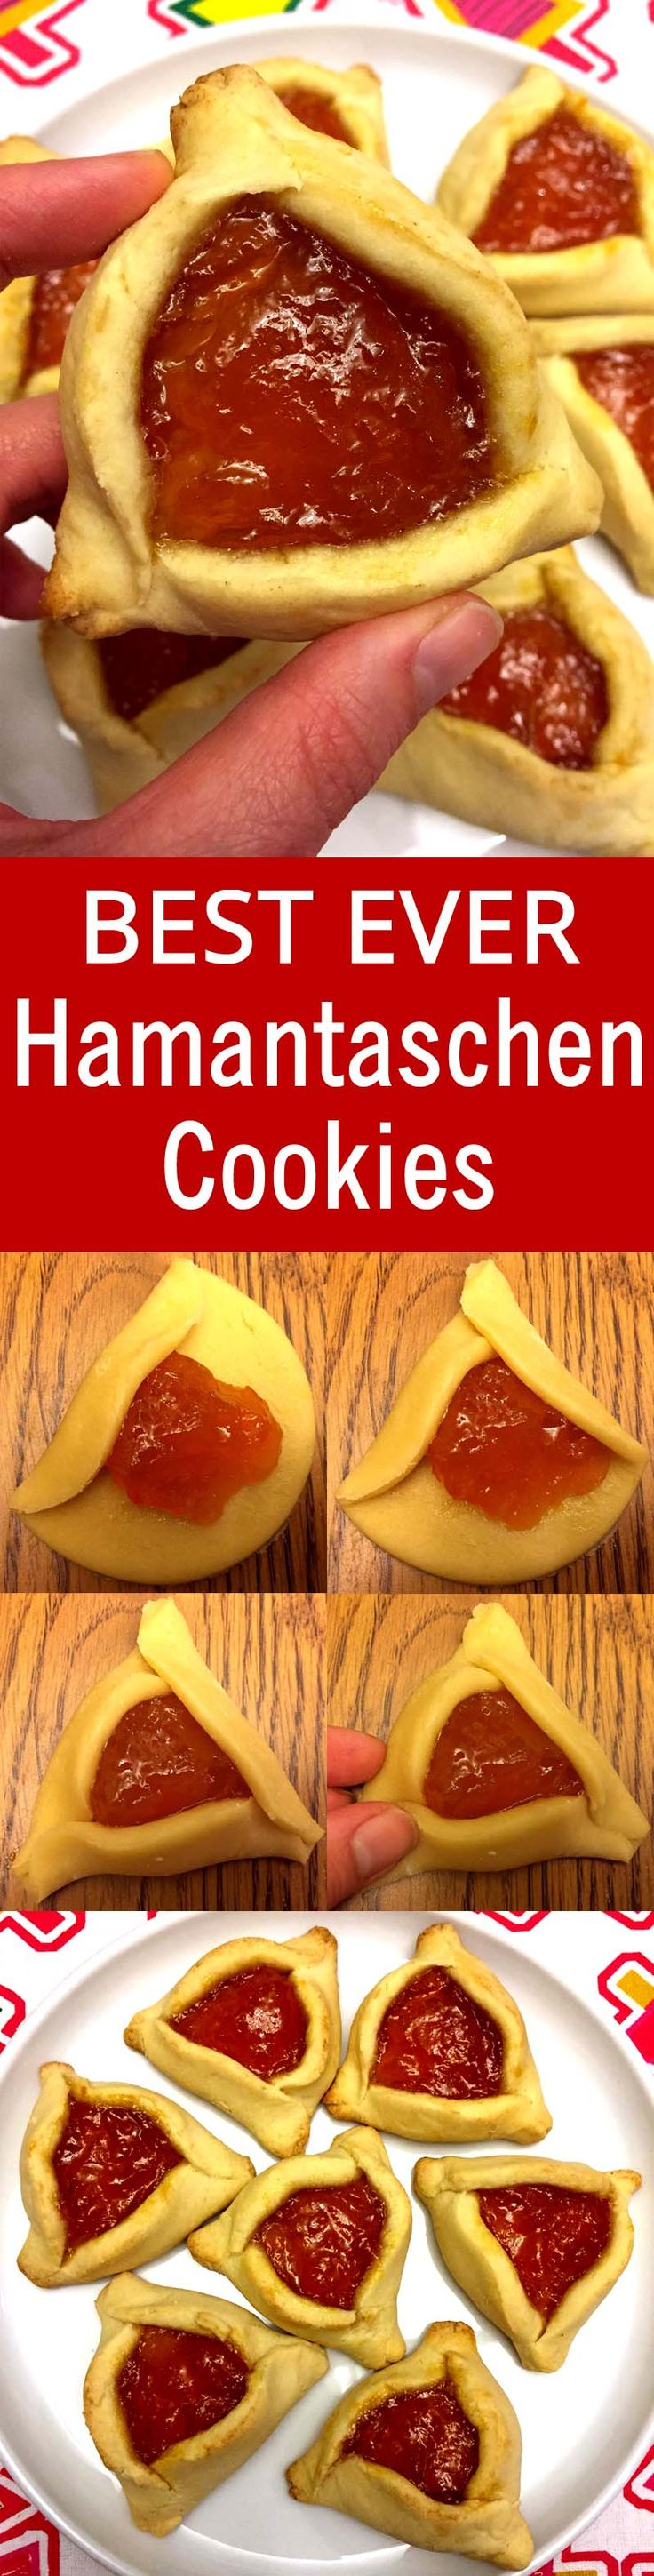 This is the only Hamantaschen recipe I'll ever need! So easy with step-by-step pictures!